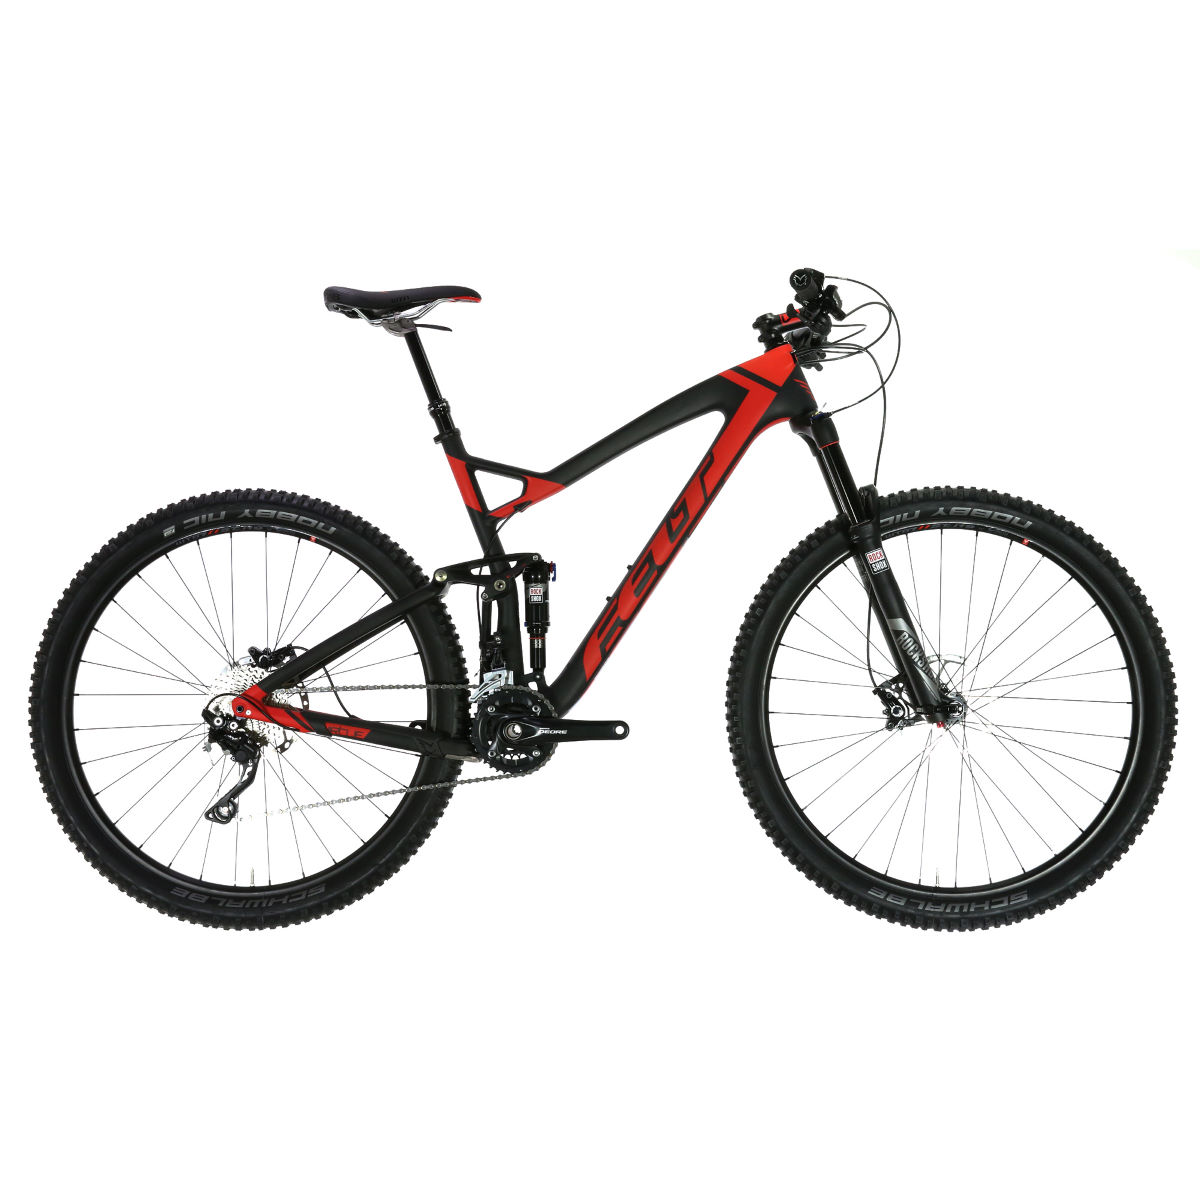 VTT Felt Virtue 3 (2016) - 16'' Carbon/Red VTT tout suspendu